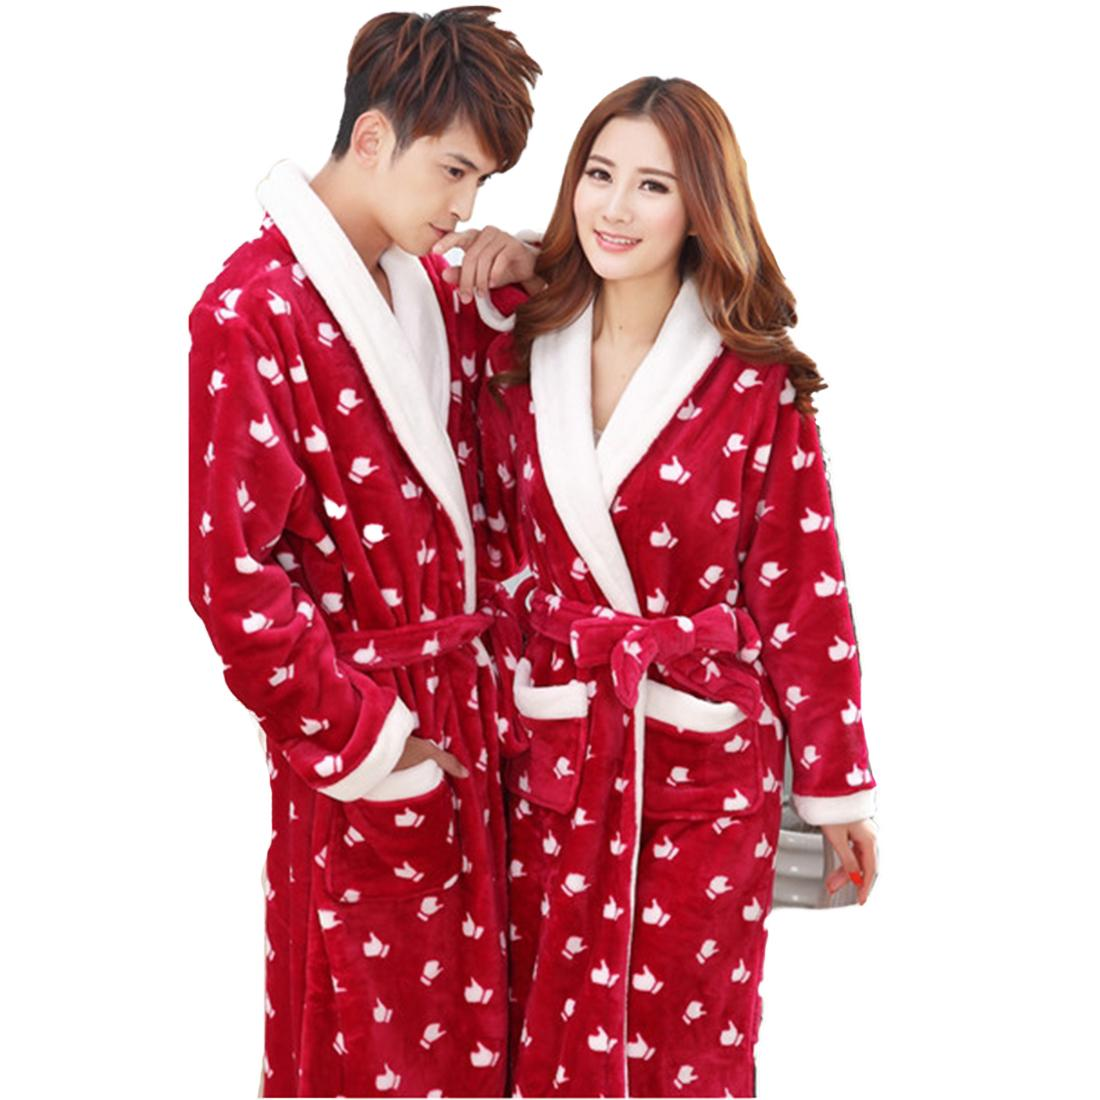 f0edc3e4b0 2019 Wholesale 2XL Knee Length Flannel Bathrobe Women Winter Leopard Robes  Men Thicken Warm Sleepwear Homewear Belted Coral Bath Robe Pockets From  Oott